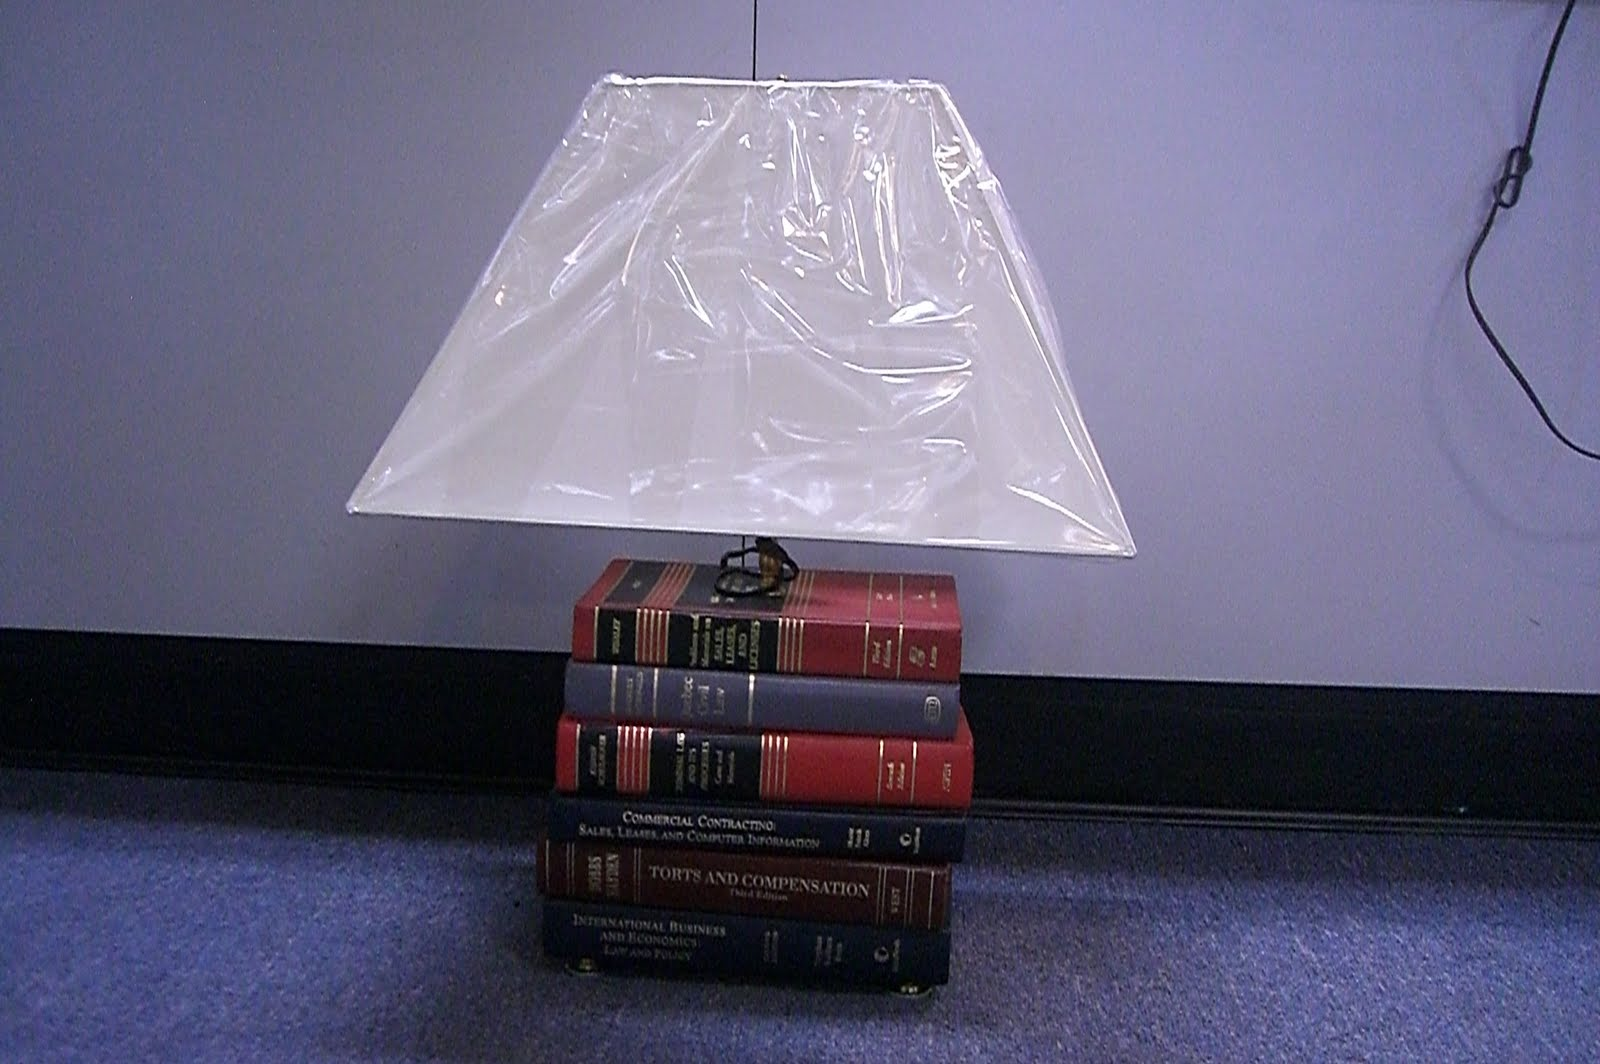 I've seen my share of great lamps and this one fits right into to